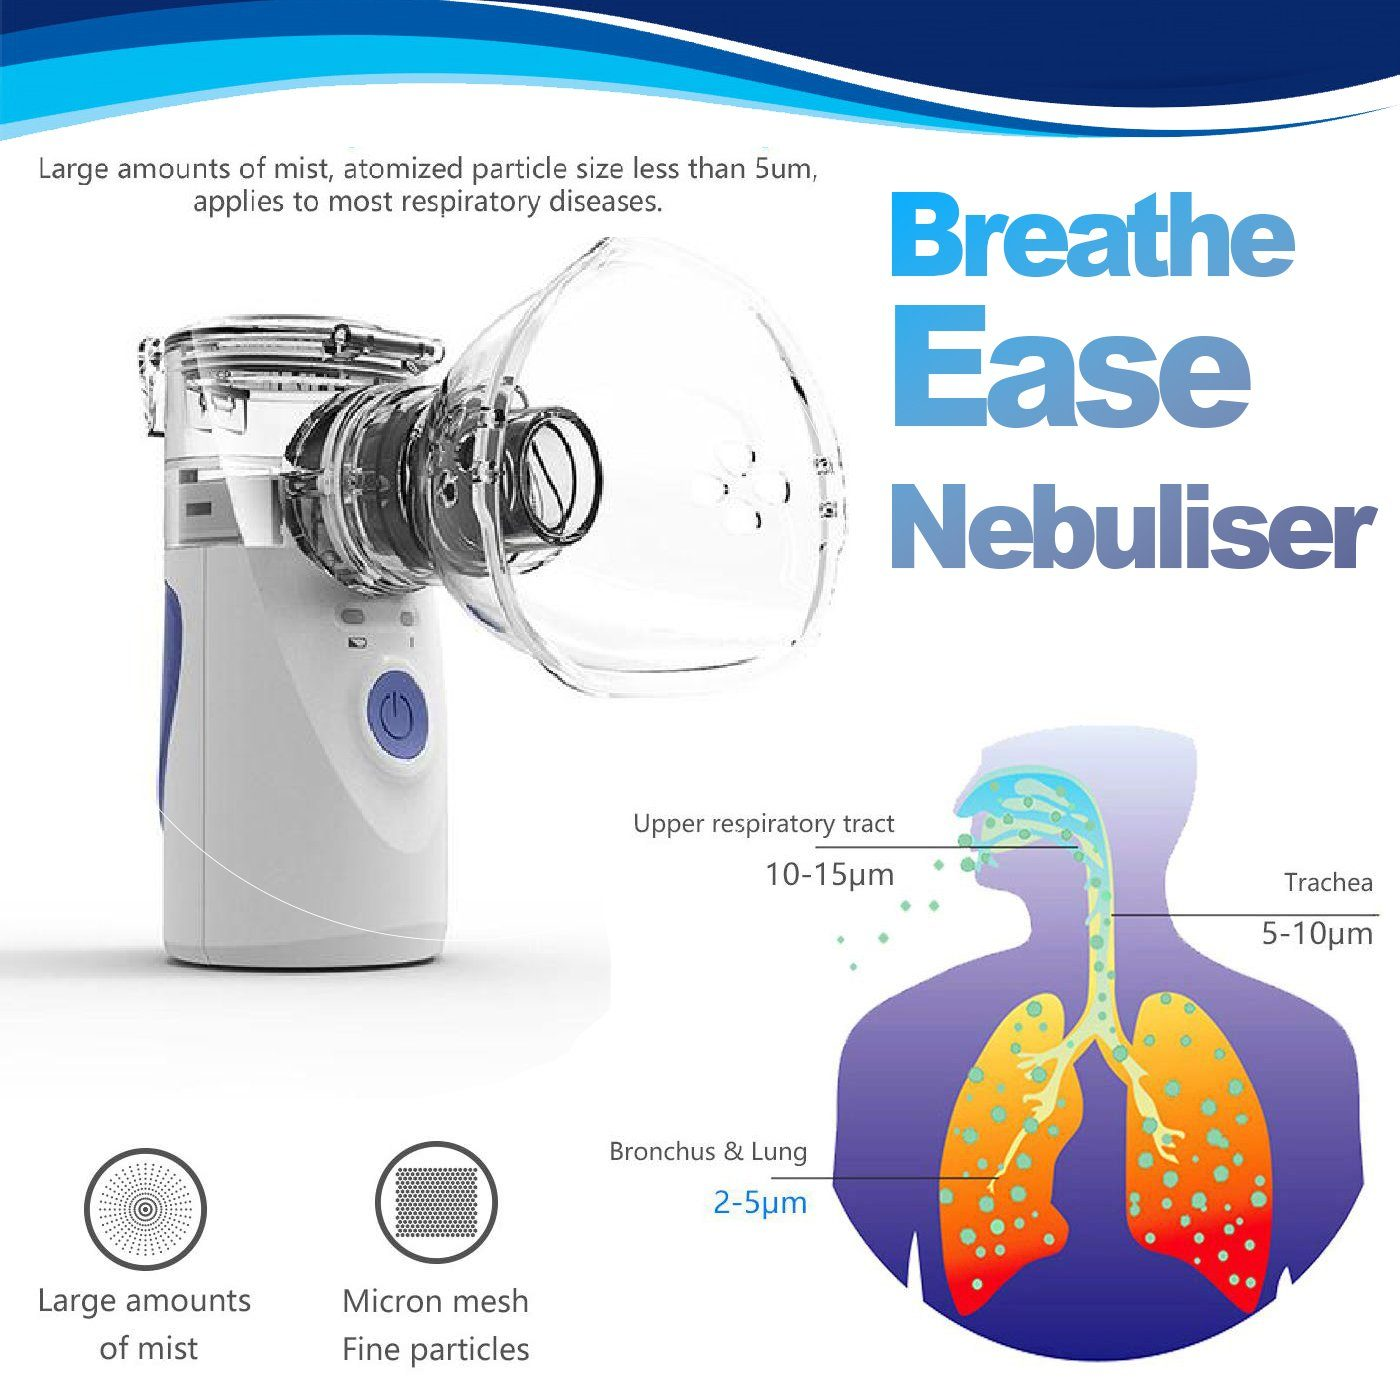 Breathe Ease Nebuliser